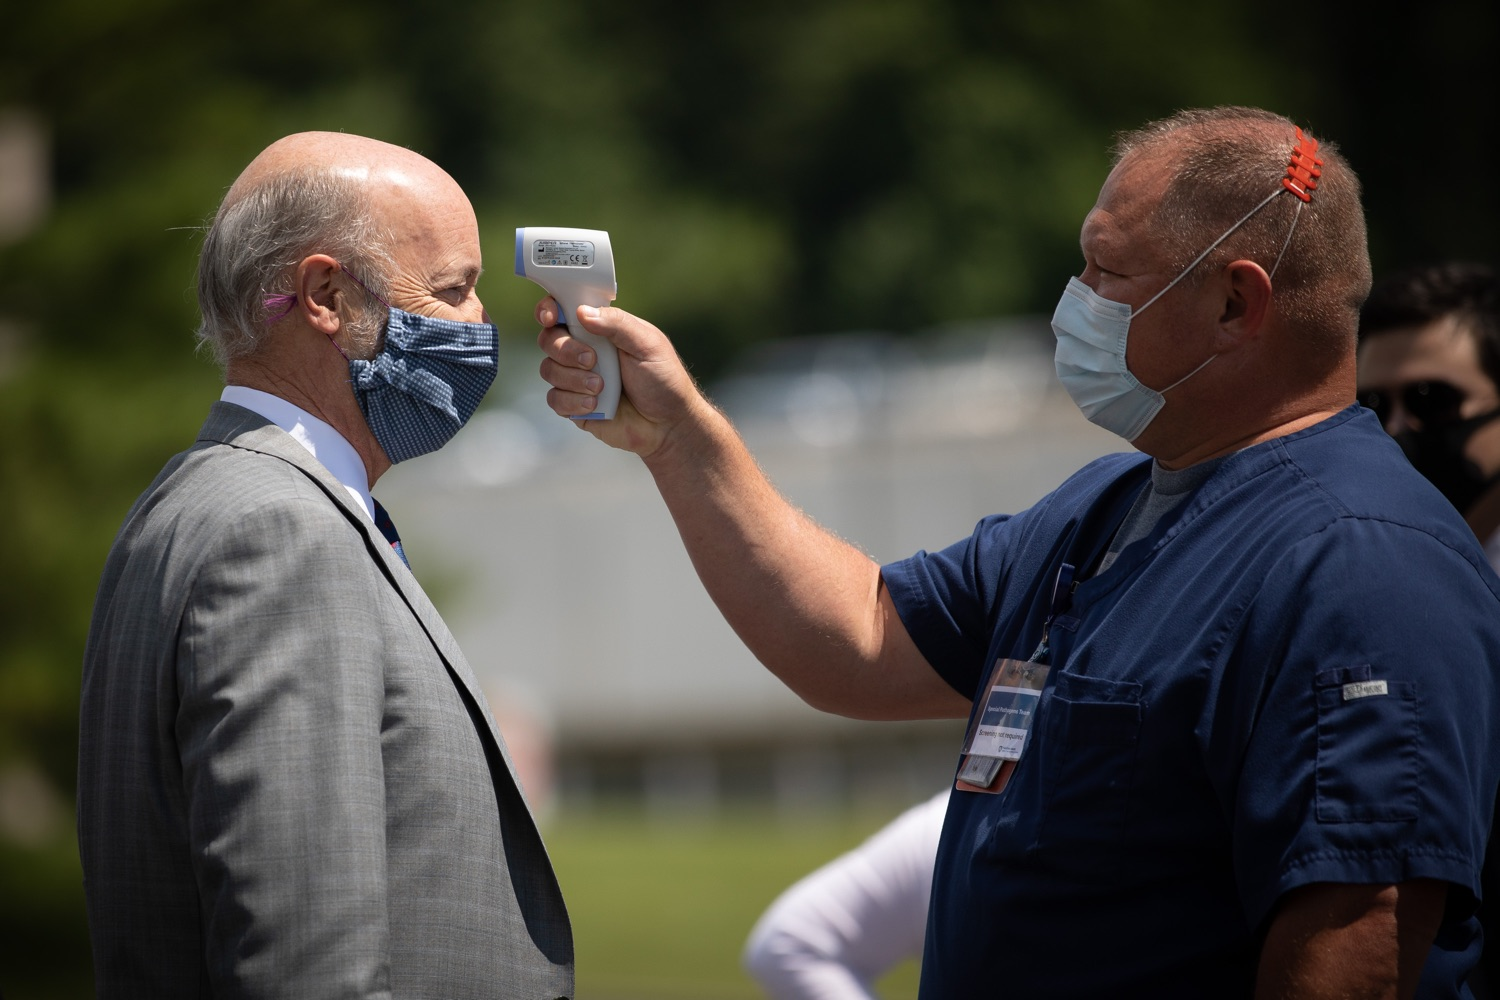 """<a href=""""https://filesource.wostreaming.net/commonwealthofpa/photo/18093_gov-healthcare_workers_dz_05.jpg"""" target=""""_blank"""">⇣Download Photo<br></a>Pennsylvania Governor Tom Wolf getting his temperature checked before his visit to Milton S. Hershey Medical Center. As the commonwealth continues its measured, phased reopening and COVID-19 case counts continue to decline, Governor Tom Wolf visited Penn State Milton S. Hershey Medical Center today to thank staff and learn more about how the facility is handling the pandemic and preparing for a possible resurgence in the fall.  Harrisburg, PA  June 24, 2020"""